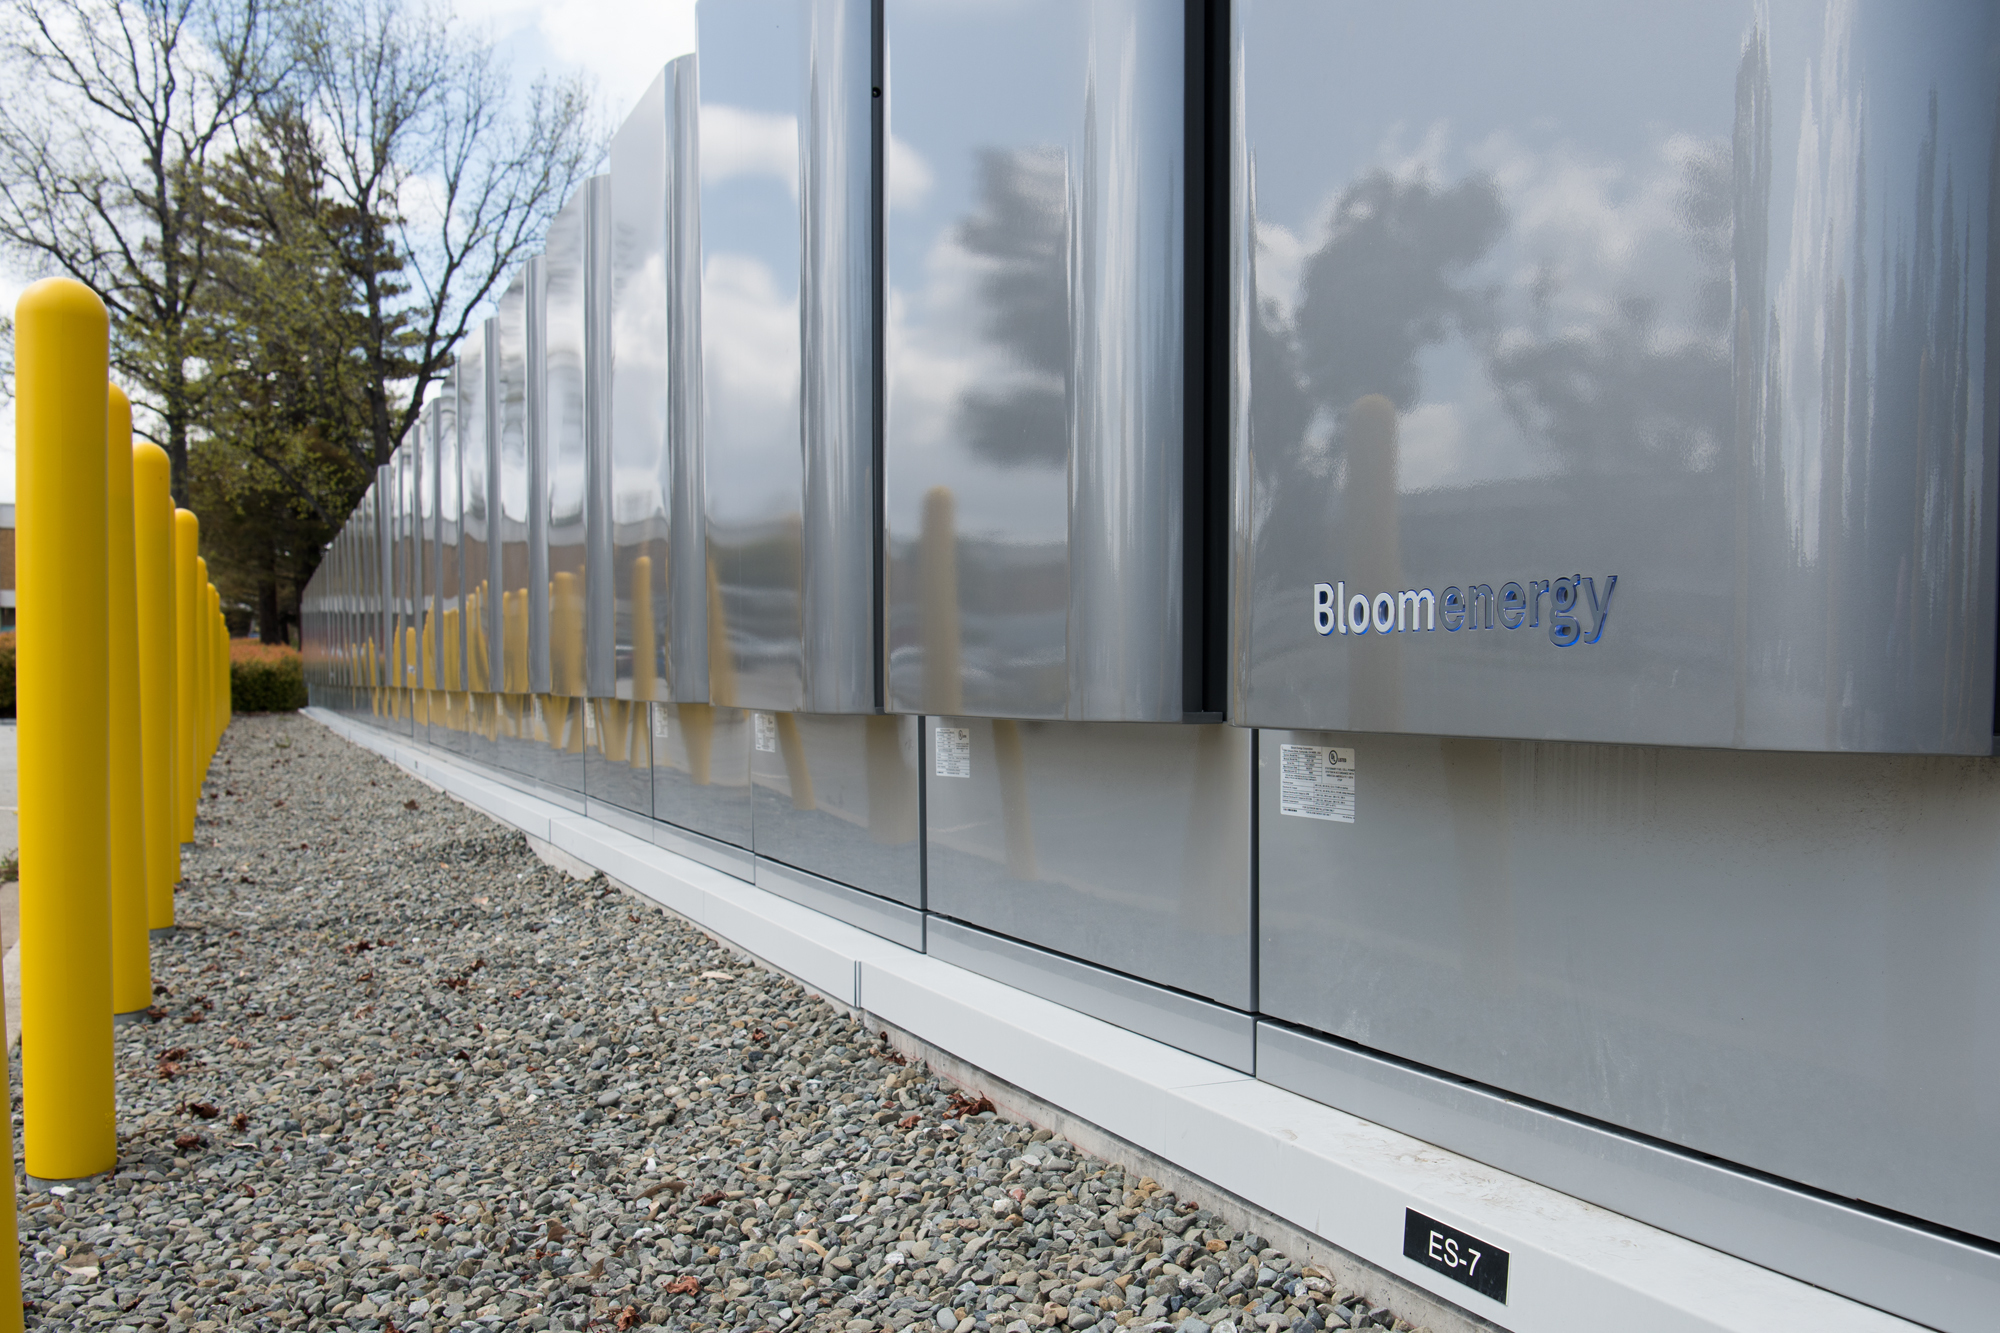 Bloom Energy Announces Hydrogen-Powered Energy Servers to Make Always-On Renewable Electricity a Reality